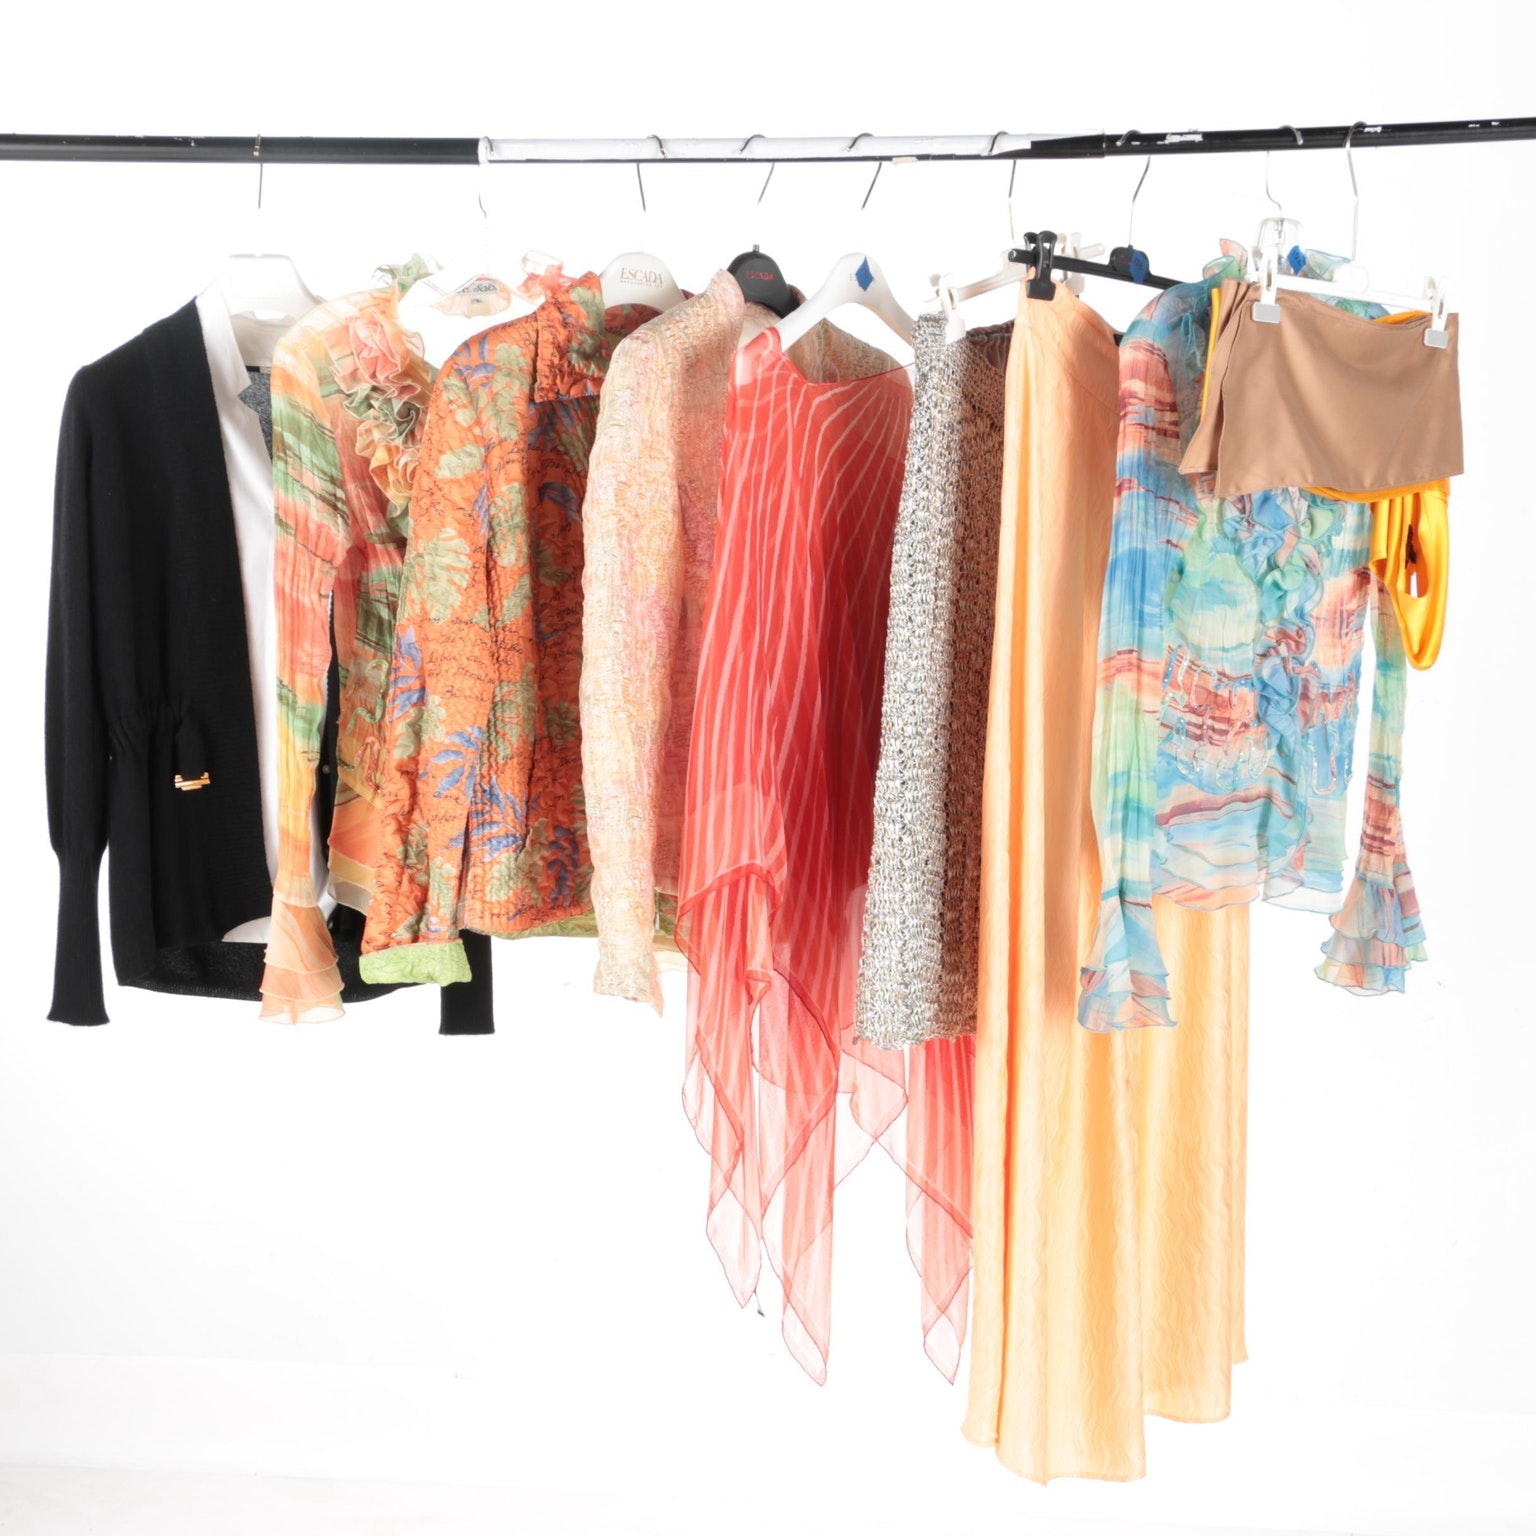 Assorted Evening Wear by Ferragamo, M.K. Solo, Lainey and More